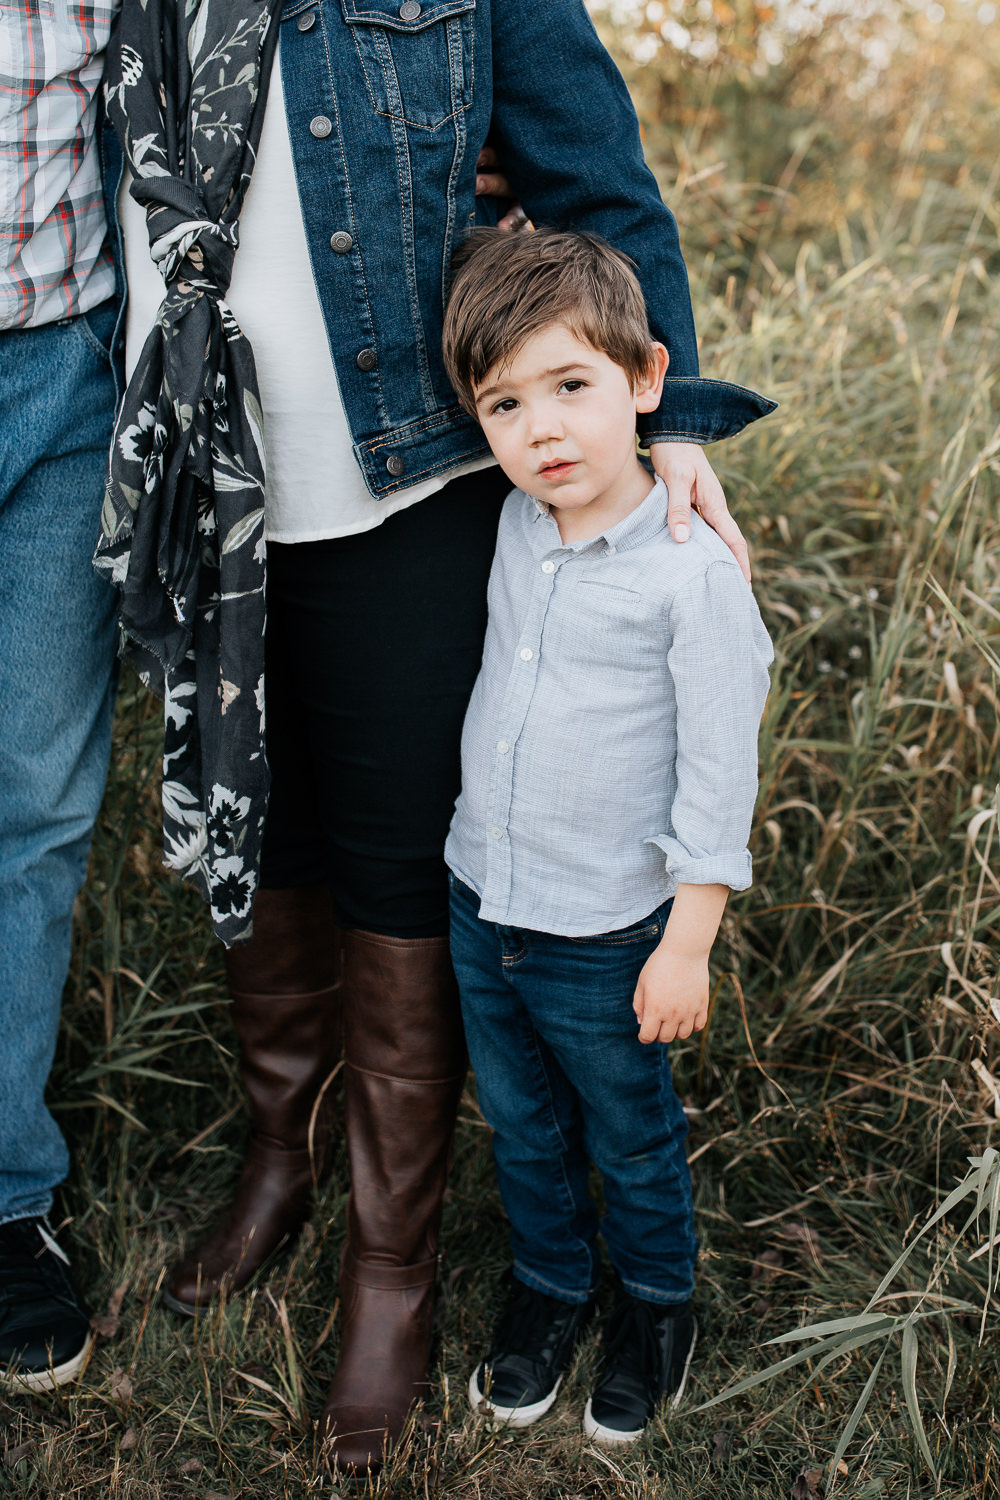 portrait of 4 year old boy with dark hair and brown eyes wearing blue button down shirt and jeans standing next to mom, whose hand is resting on his shoulder, close up of child - GTA Lifestyle Photography